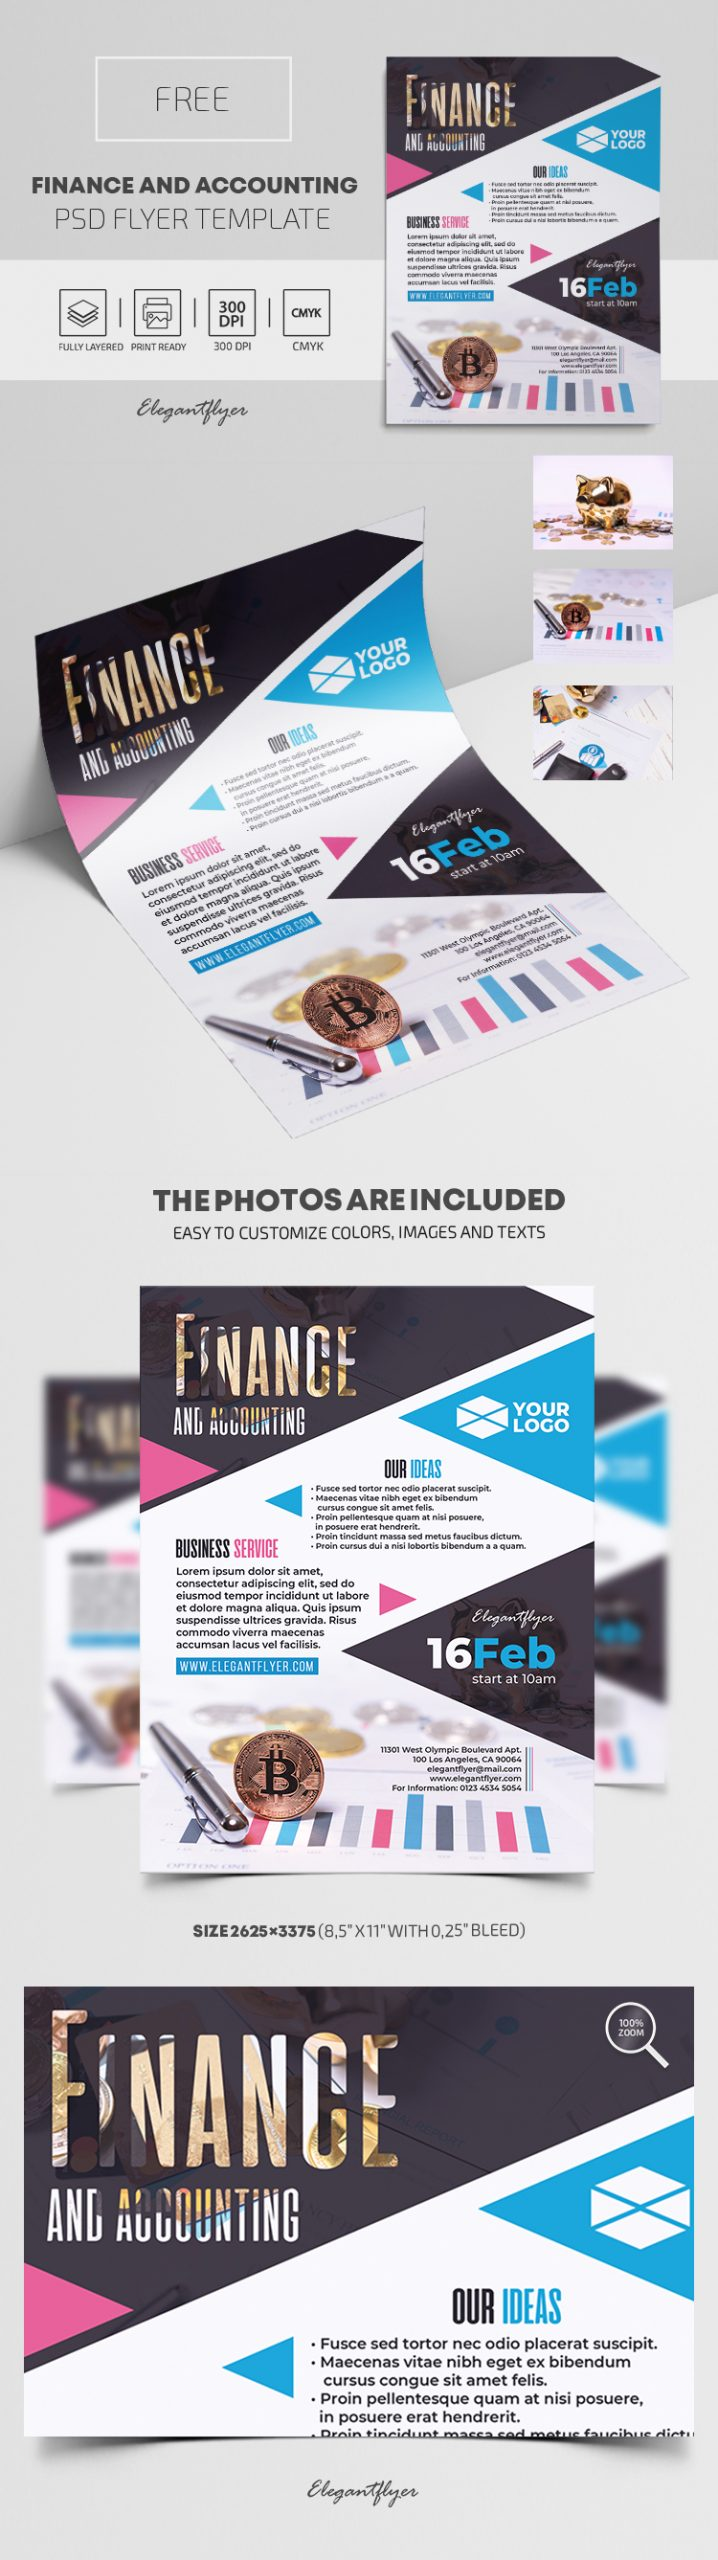 Finance and Accounting – Free PSD Flyer Template